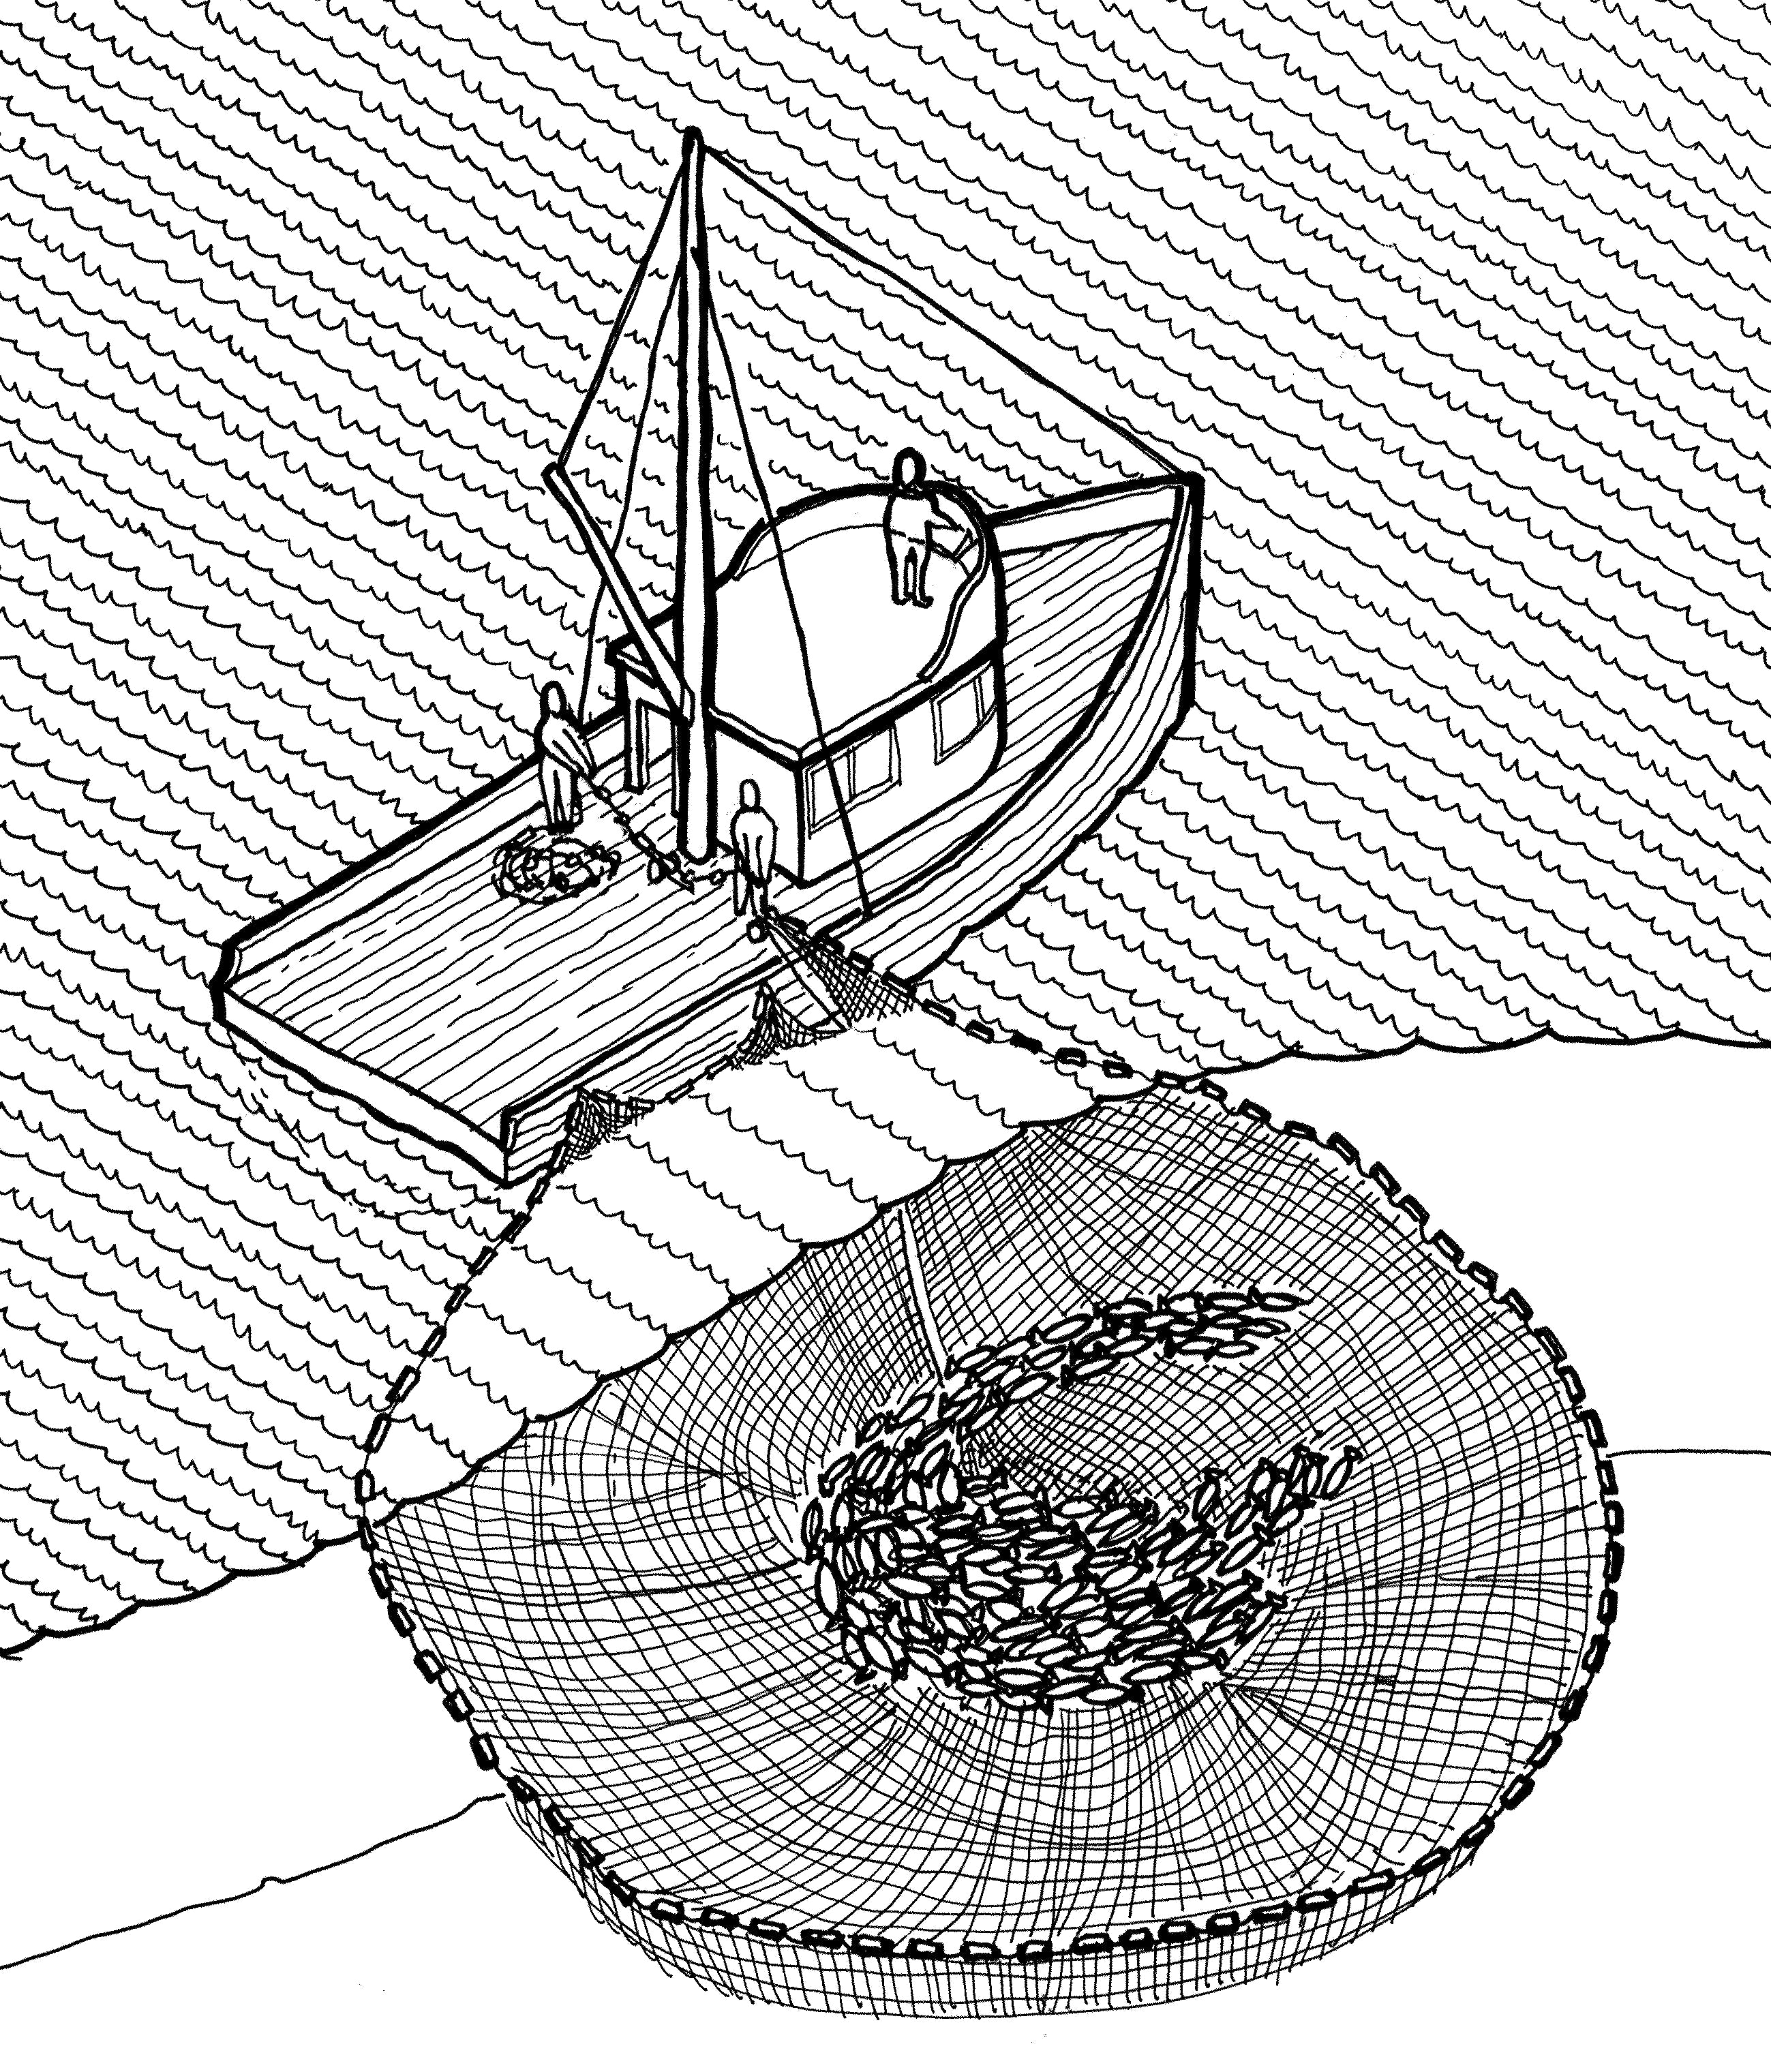 An illustration of the purse seine fishing technique, which casting a net in front of the path of a school of fish and then closing the bottom after they've entered.